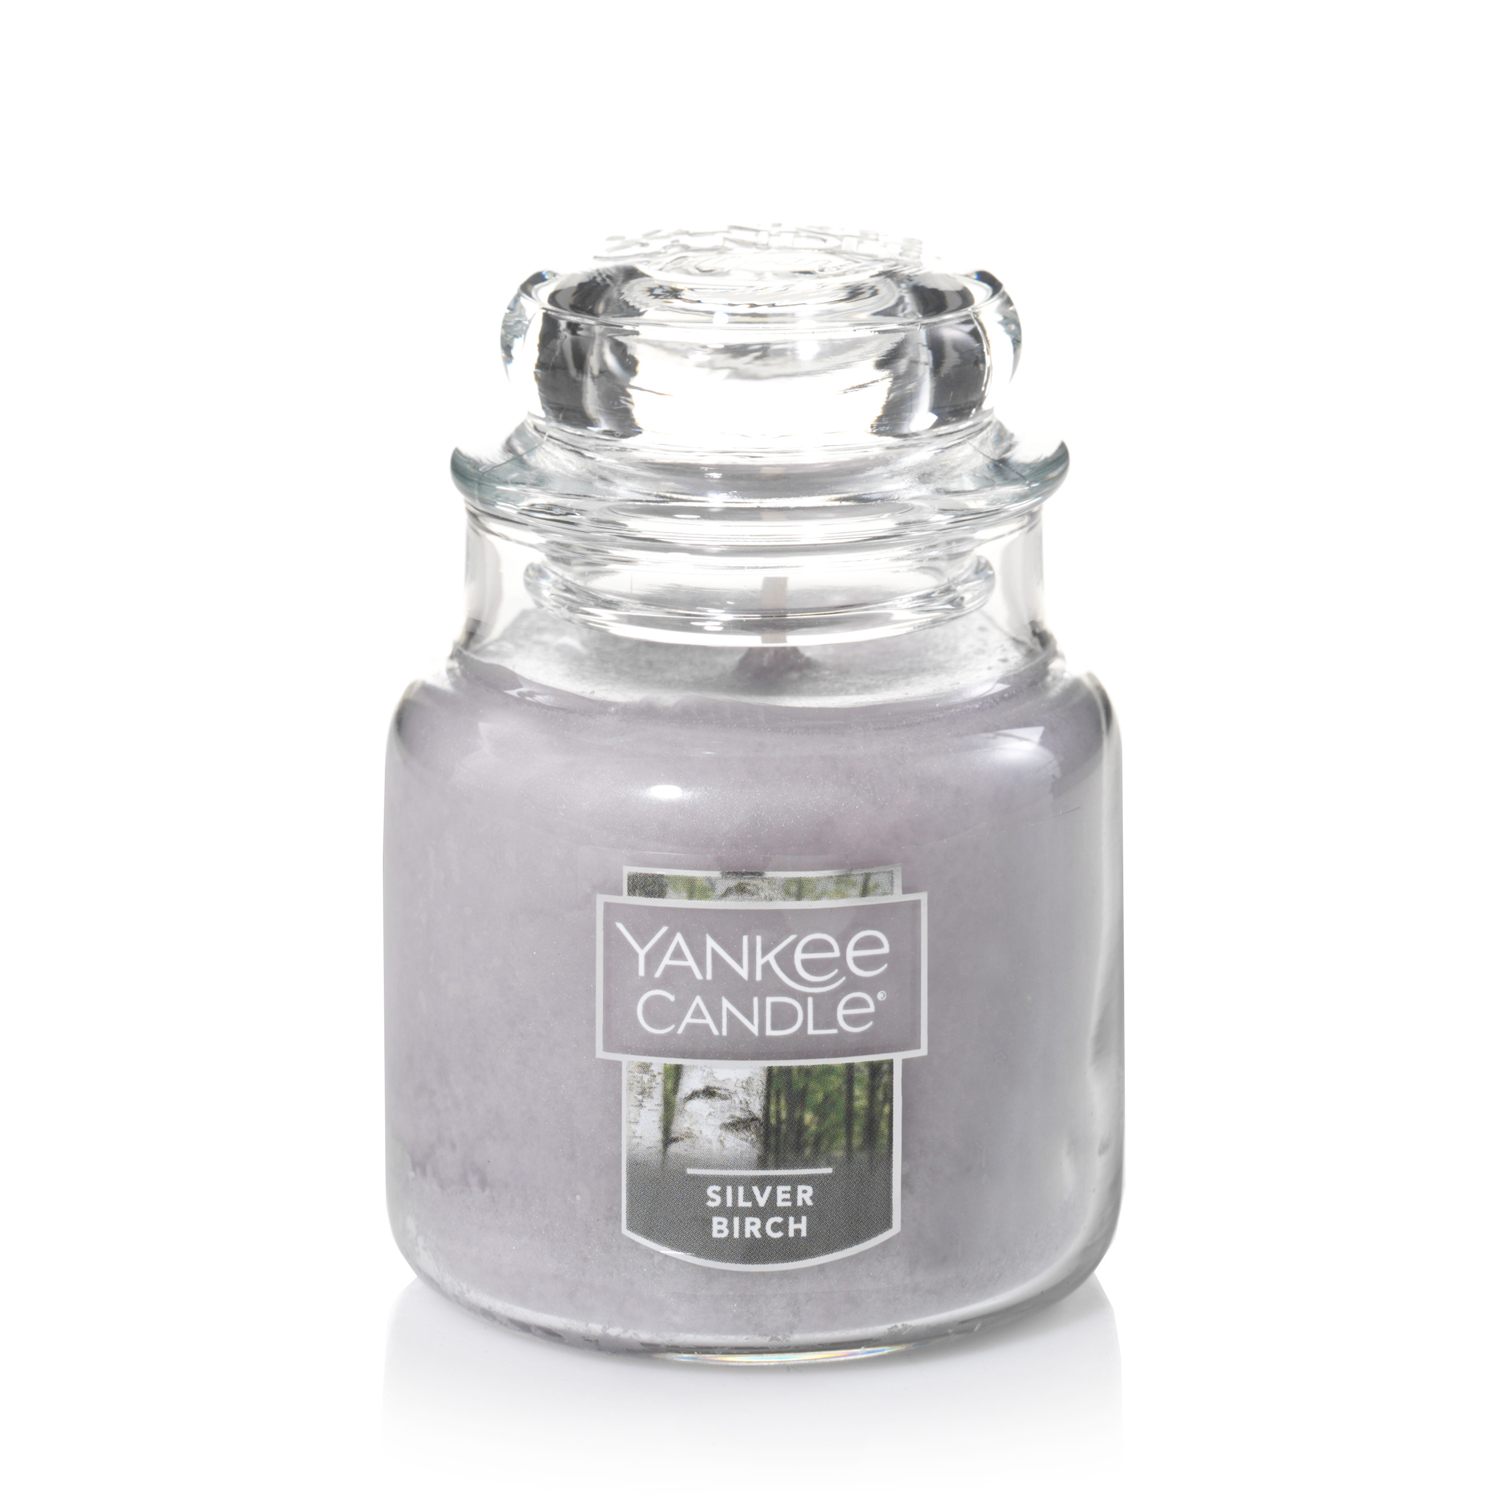 Yankee Candle Small Jar Candle, Silver Birch